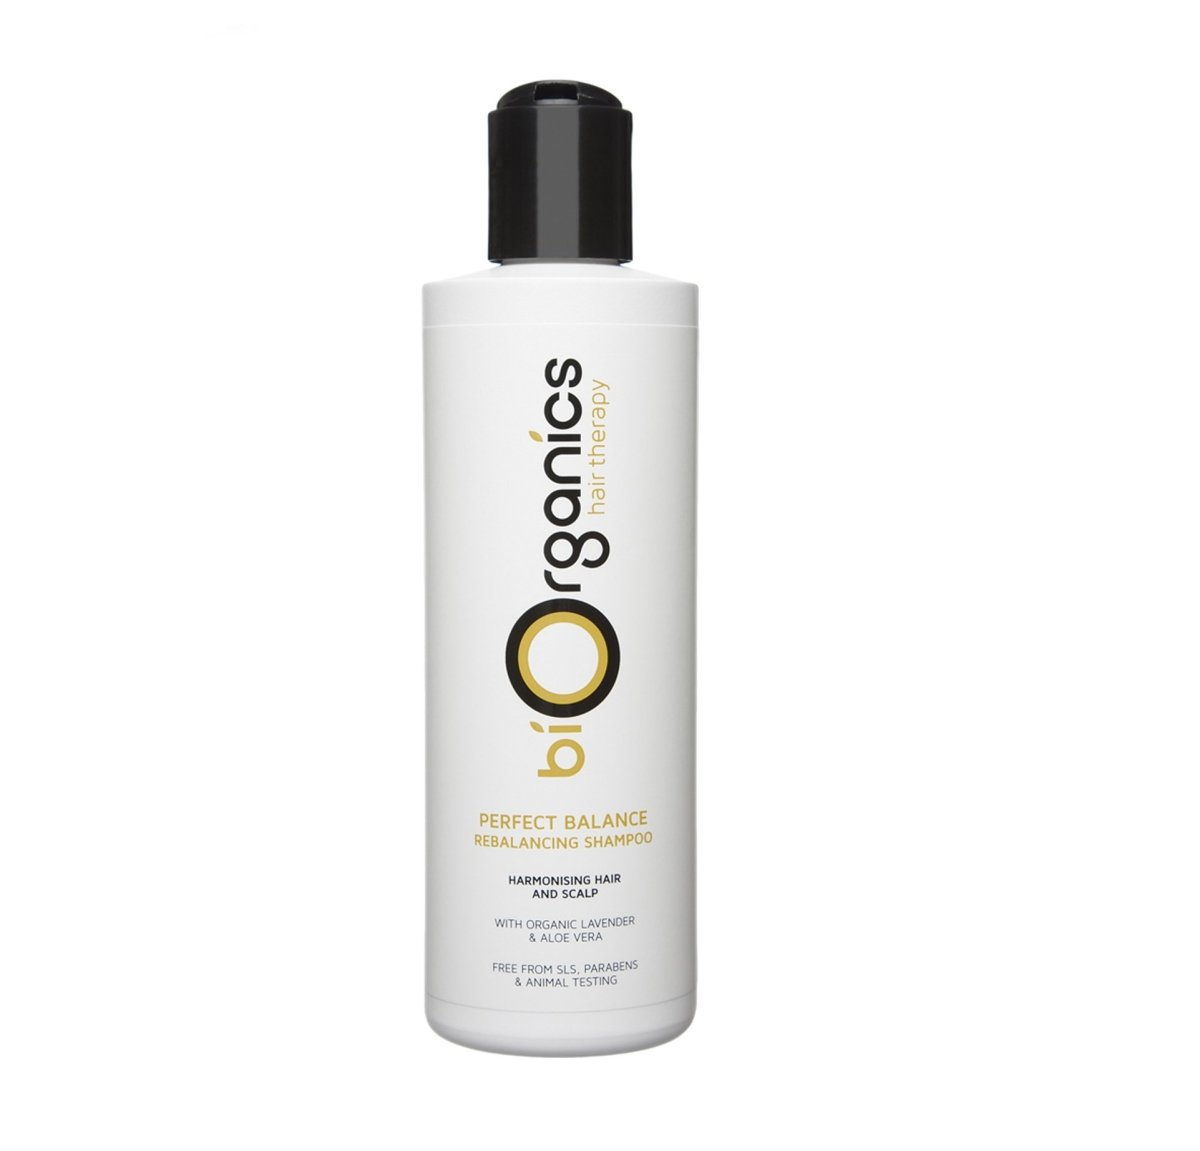 biOrganics Rebalancing Shampoo - Mystic Moments UK